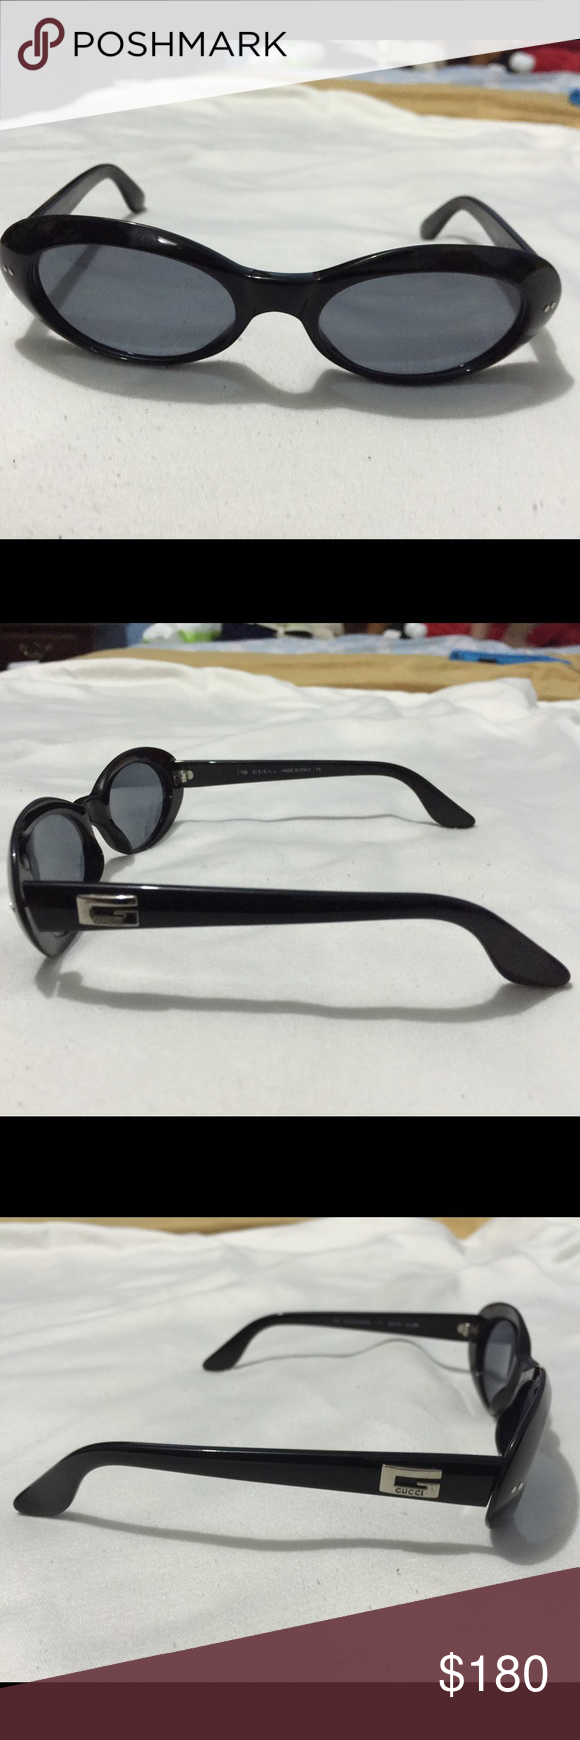 1ae32eb6547e8 Vintage Gucci black frame Sunglasses GG 2413 N S G THIS IS AUTHENTIC GUCCI